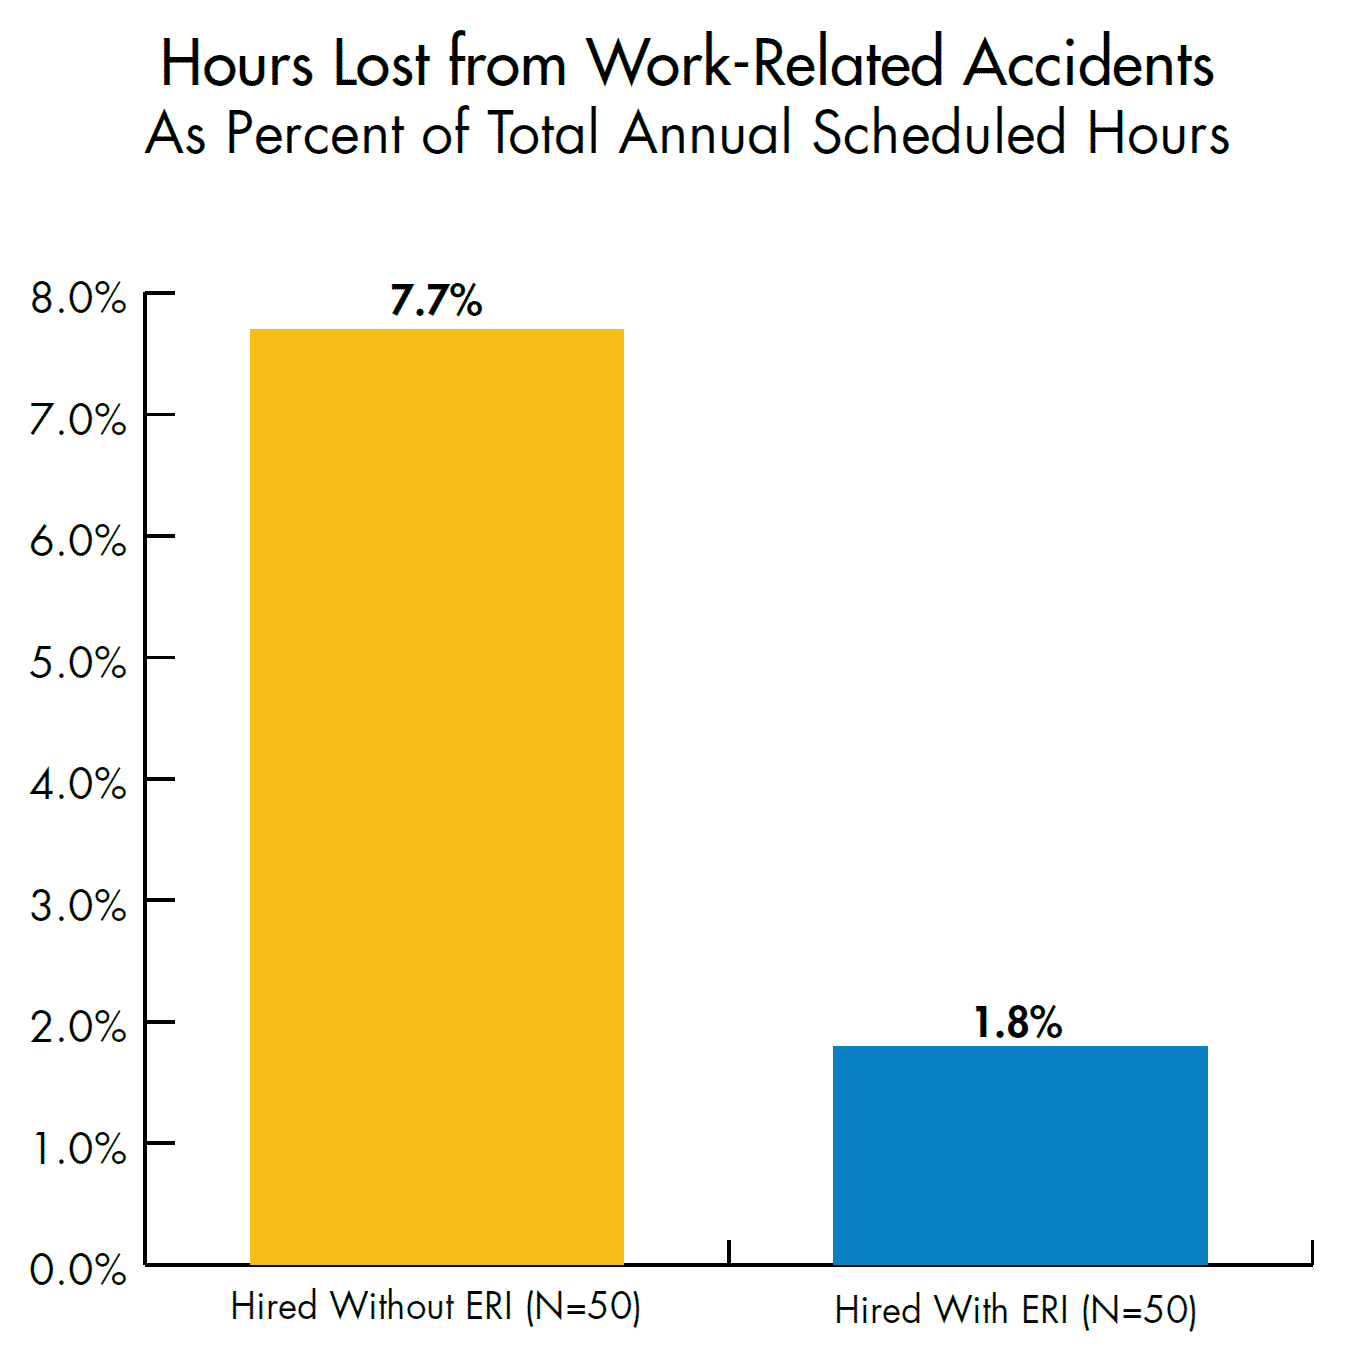 Hours lost from work-related accidents